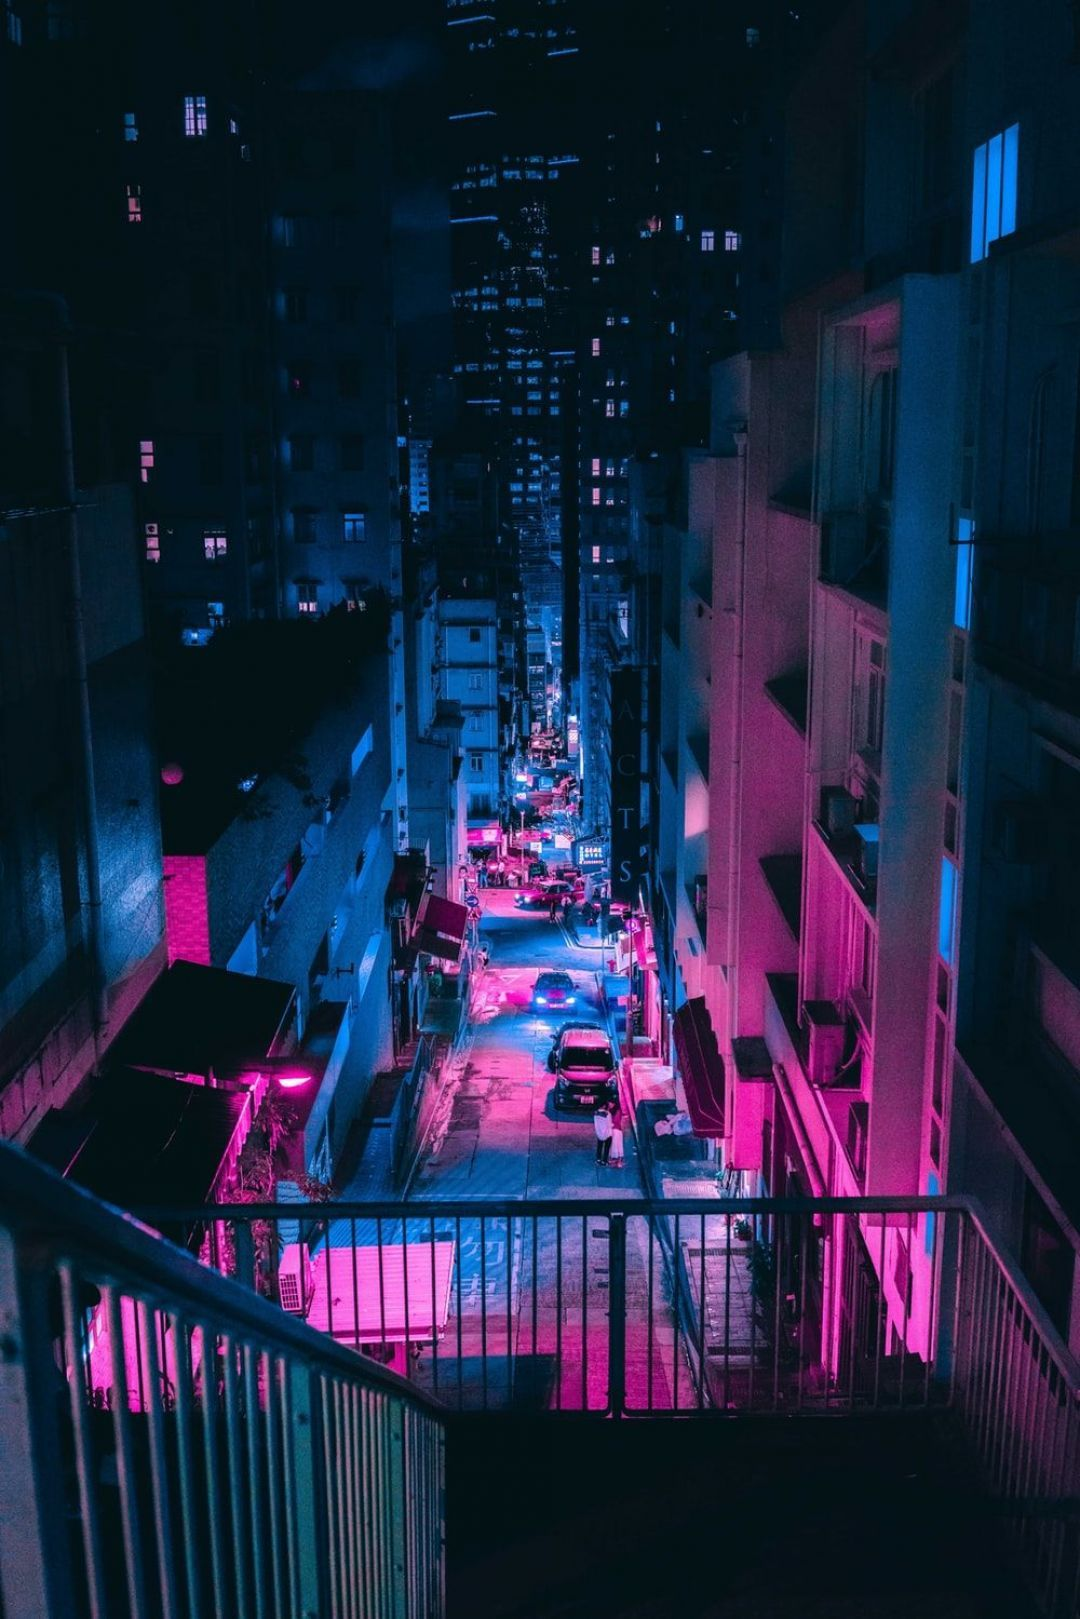 Filter Android Iphone Desktop Hd Backgrounds Wallpapers 1080p 4k 121848 Hdwallpapers Androidwa Aesthetic Wallpapers Neon Wallpaper City Aesthetic